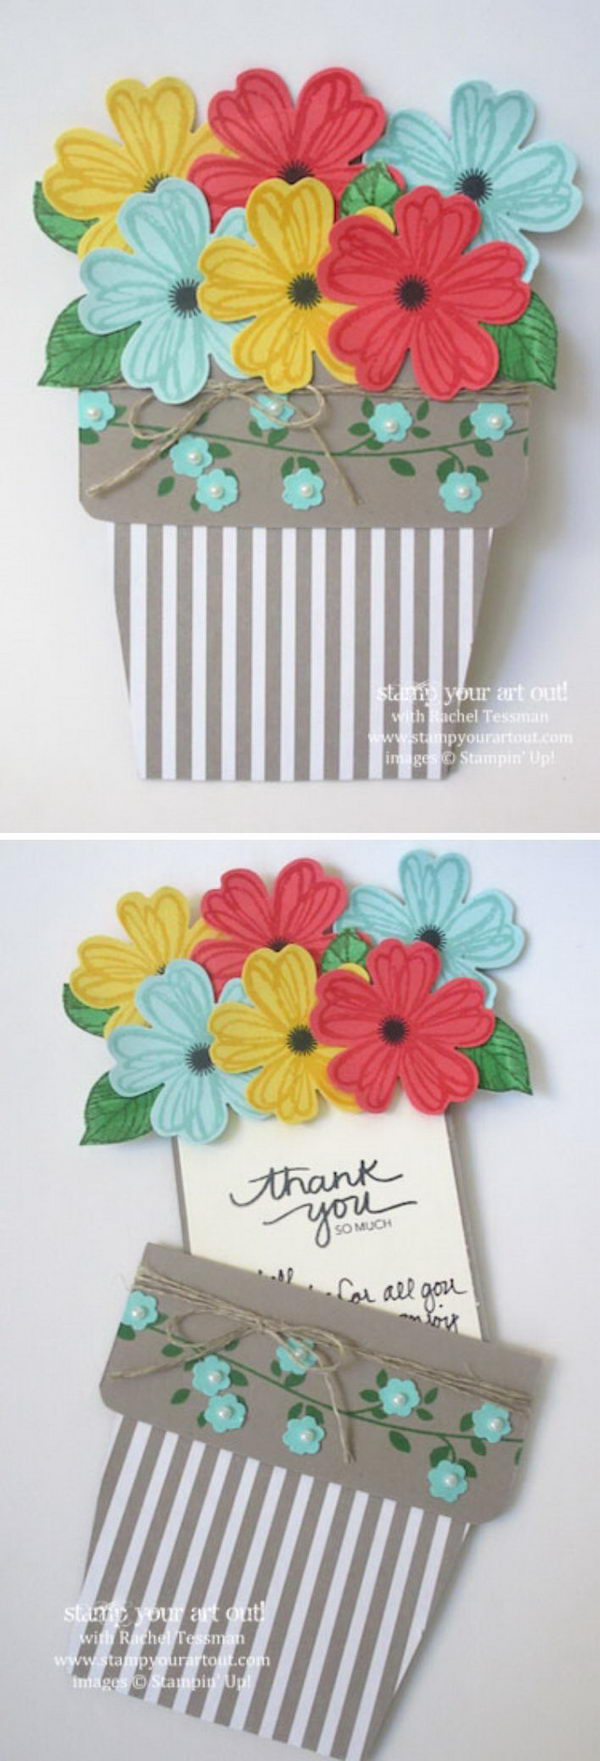 Thank You Card With Flowers Sliding in And out of The Pot.